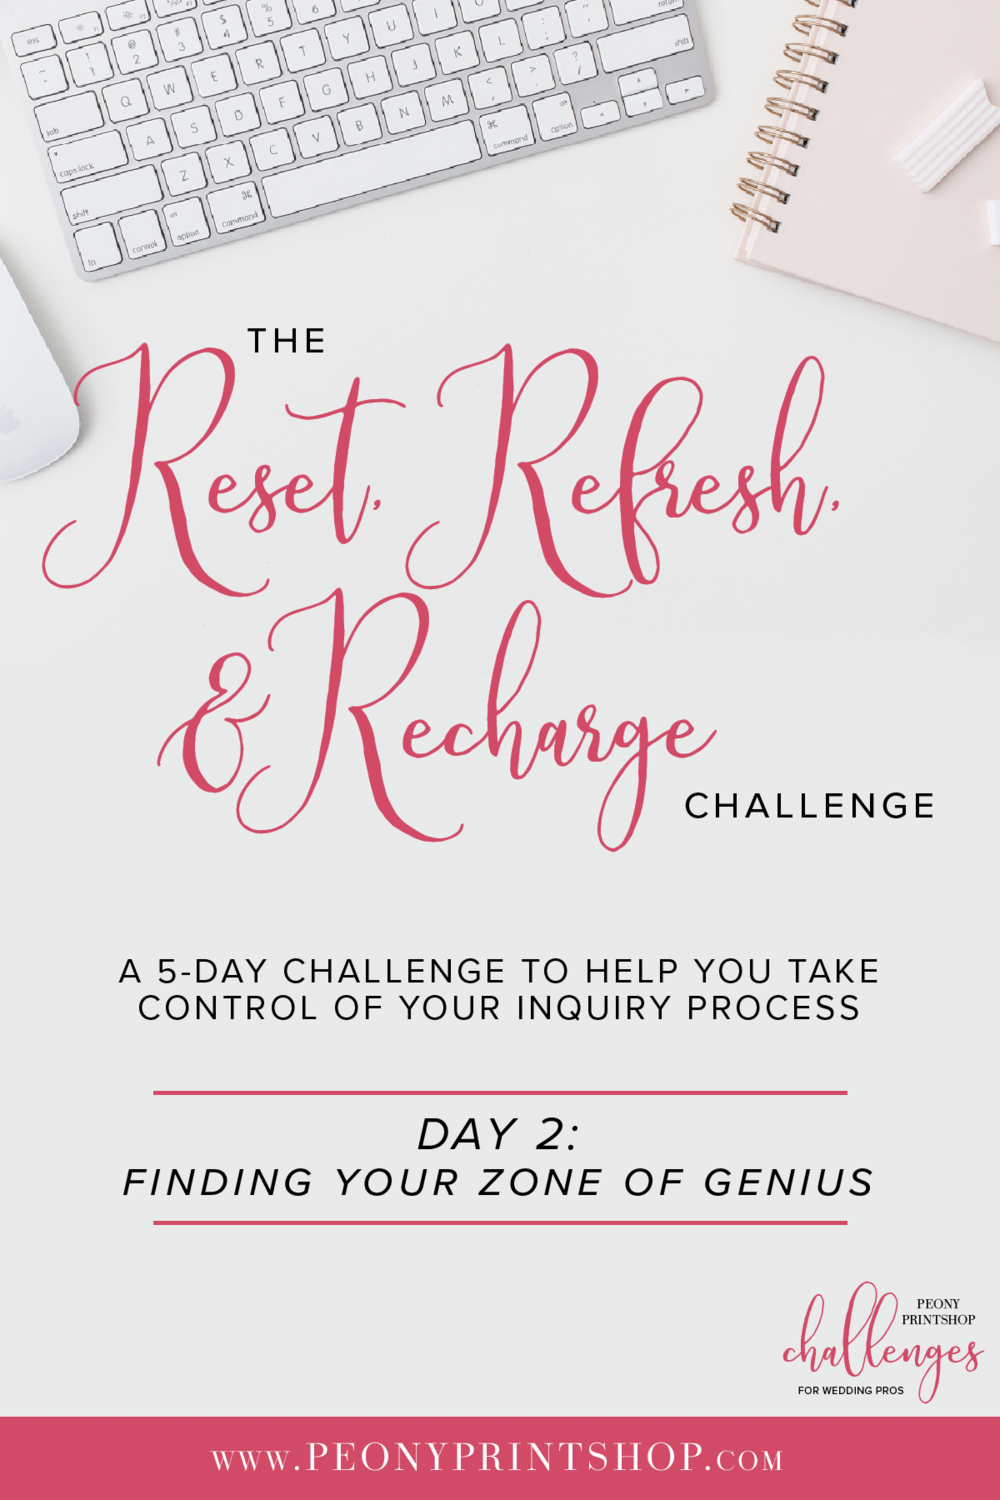 Reset, Refresh, & Recharge Challenge at PeonyPrinsthop.com | Day 2: Finding Your Zone of Genius